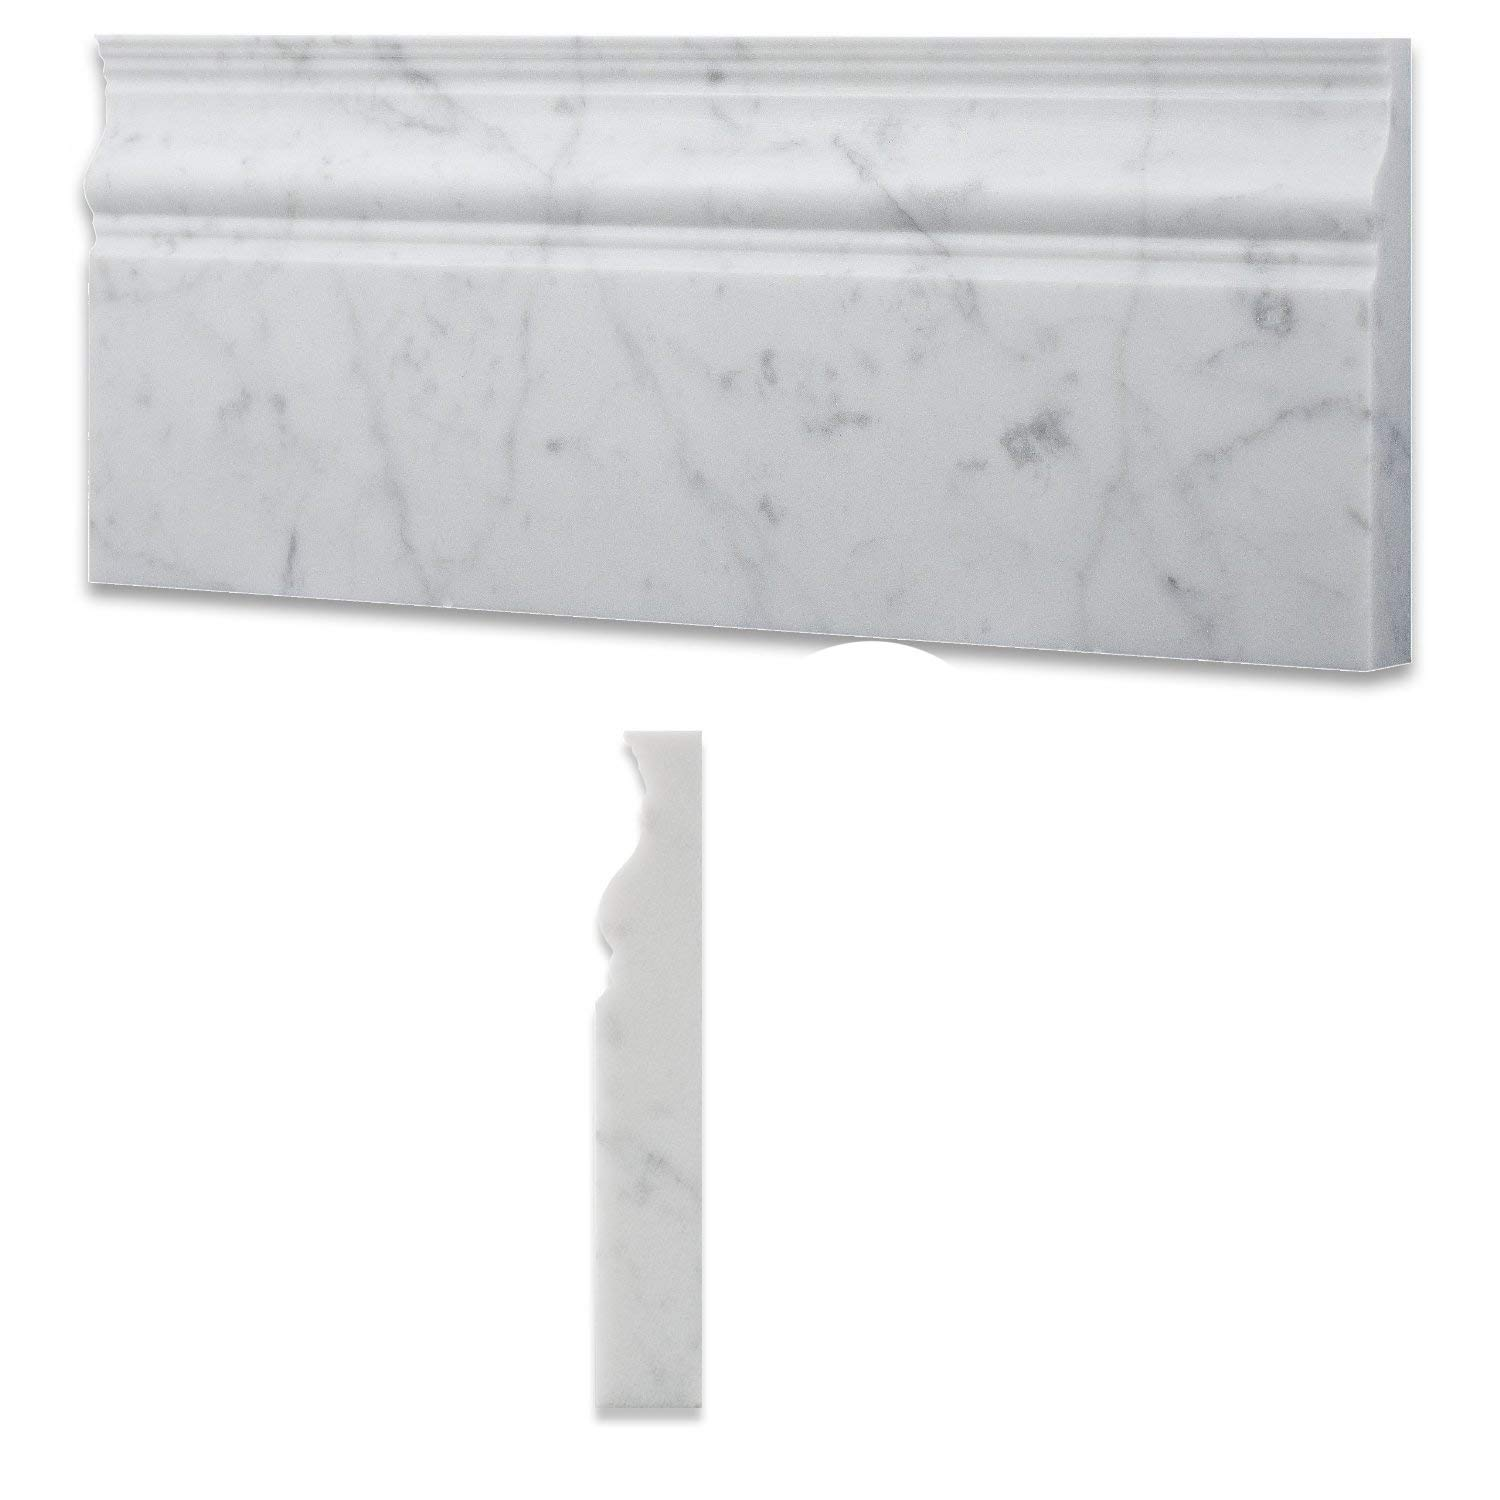 Italian Carrara White Marble Polished 5 X 12 Baseboard - Box of 5 Pcs. by Oracle Moldings